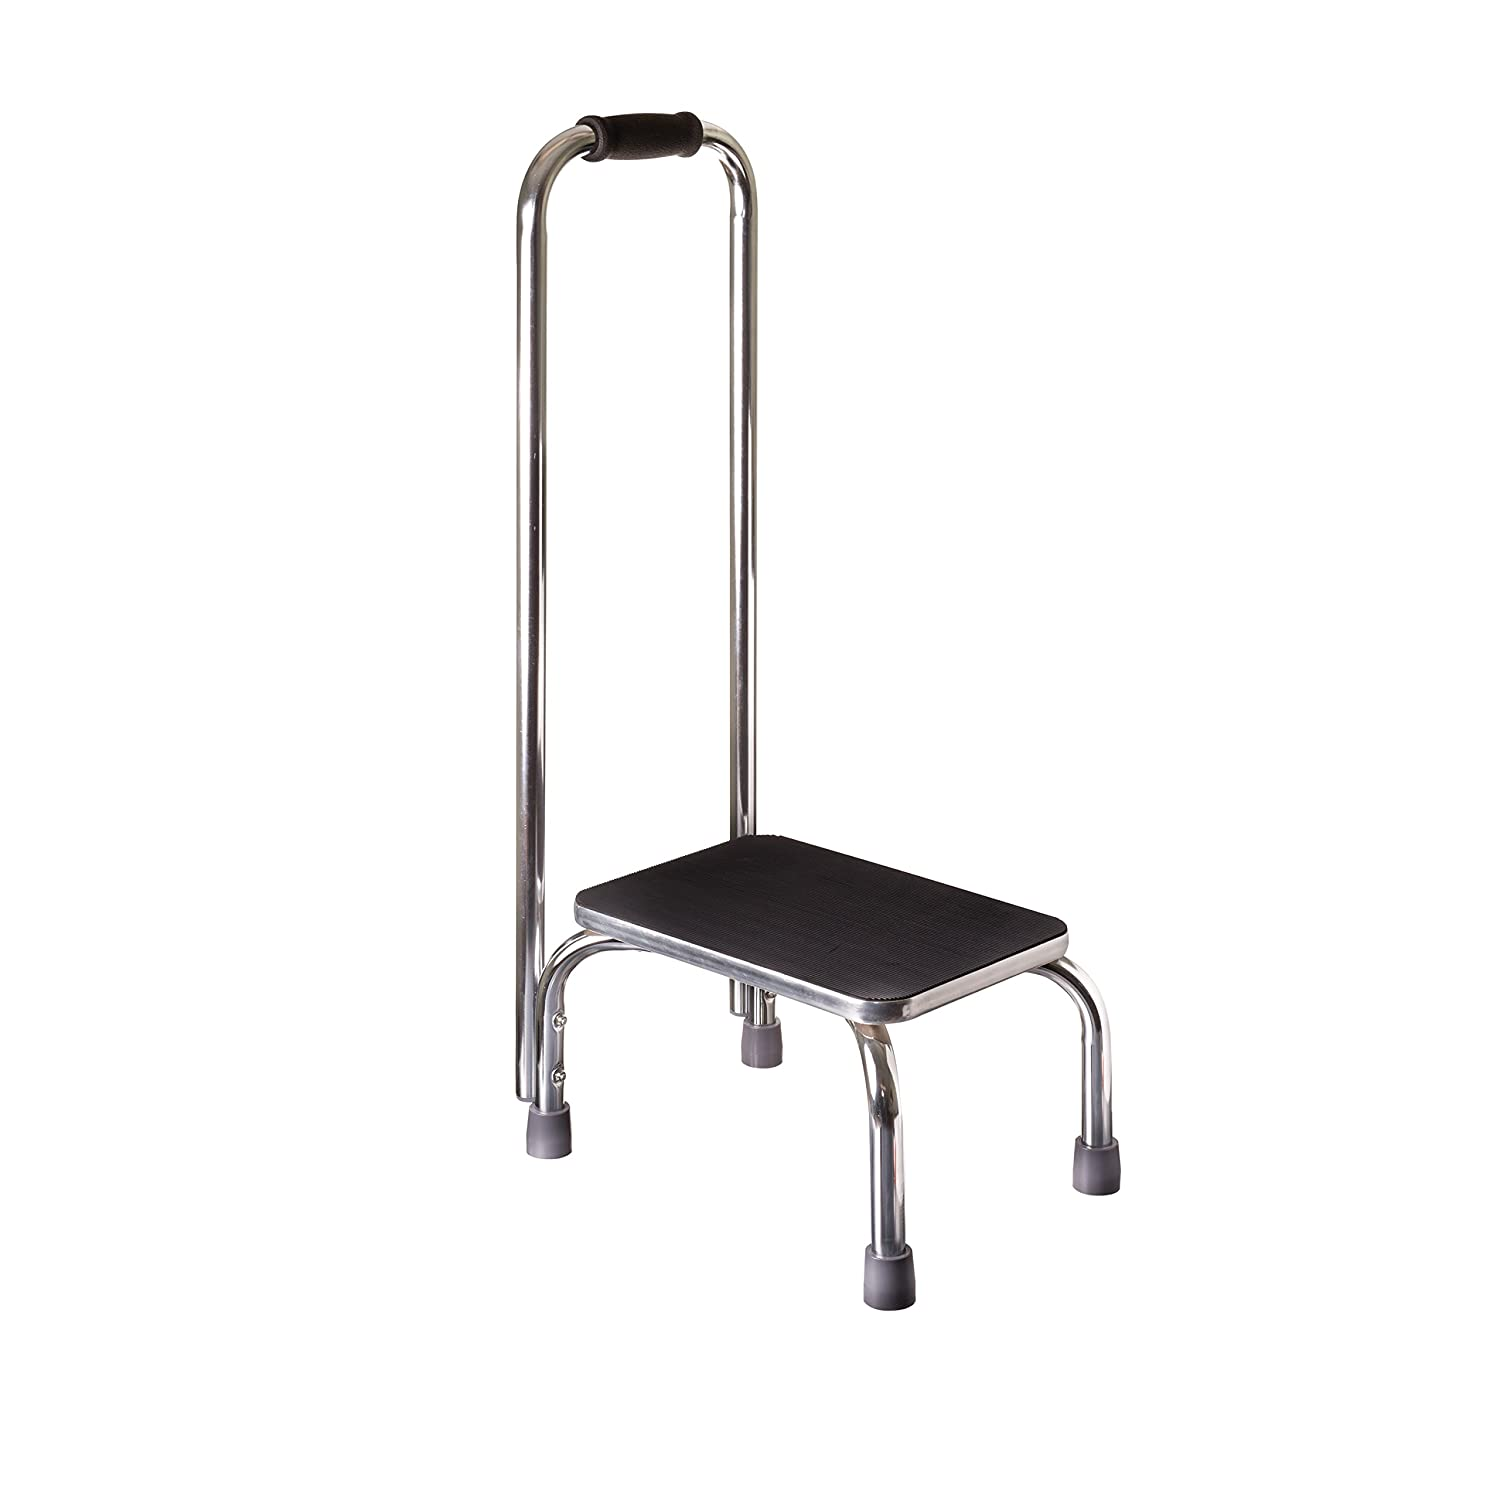 Duro-Med Step Stool with Handle, Silver and Black Medical Step Stool